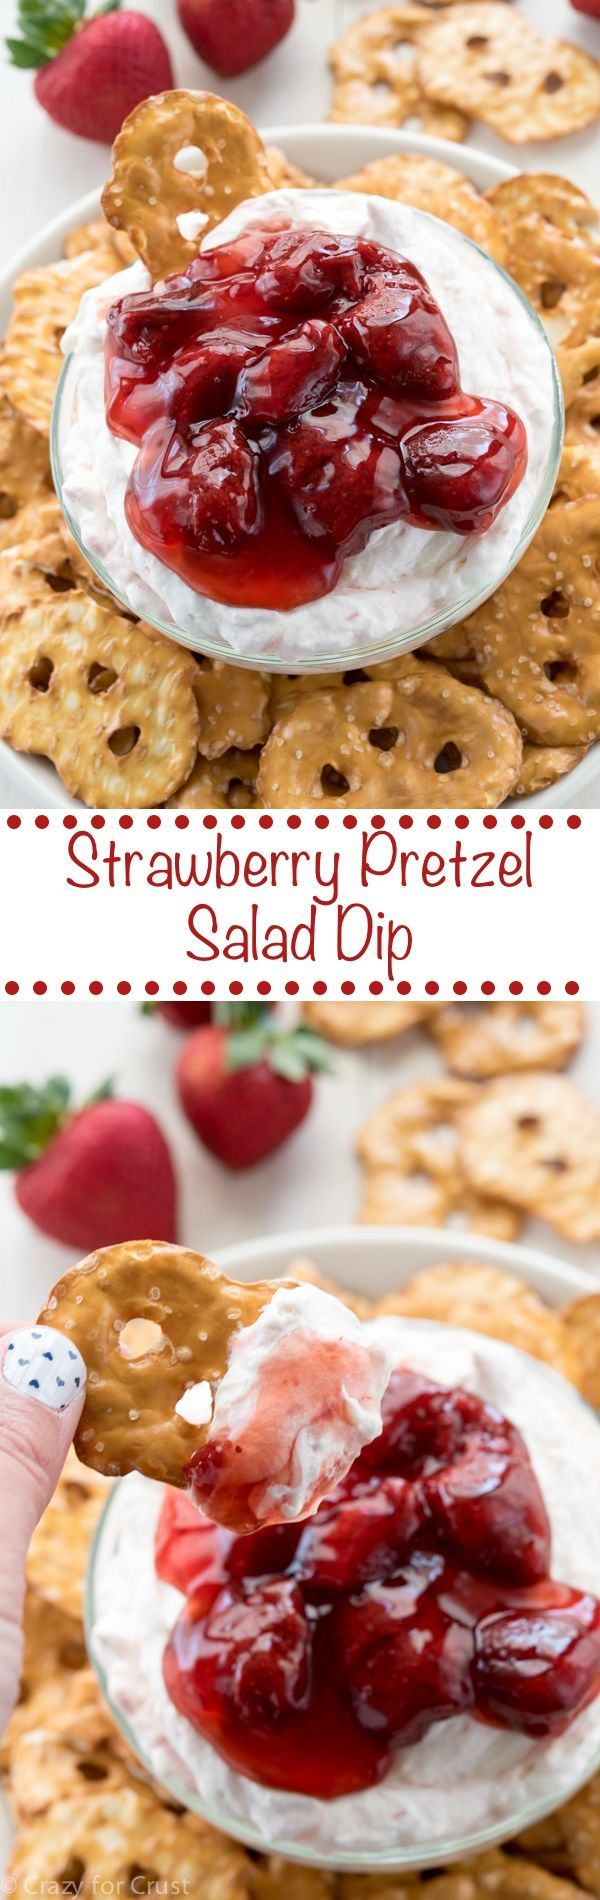 Strawberry Pretzel Salad Dip! Turn a no-bake summer dessert into an easy sweet dip recipe! Perfect for any